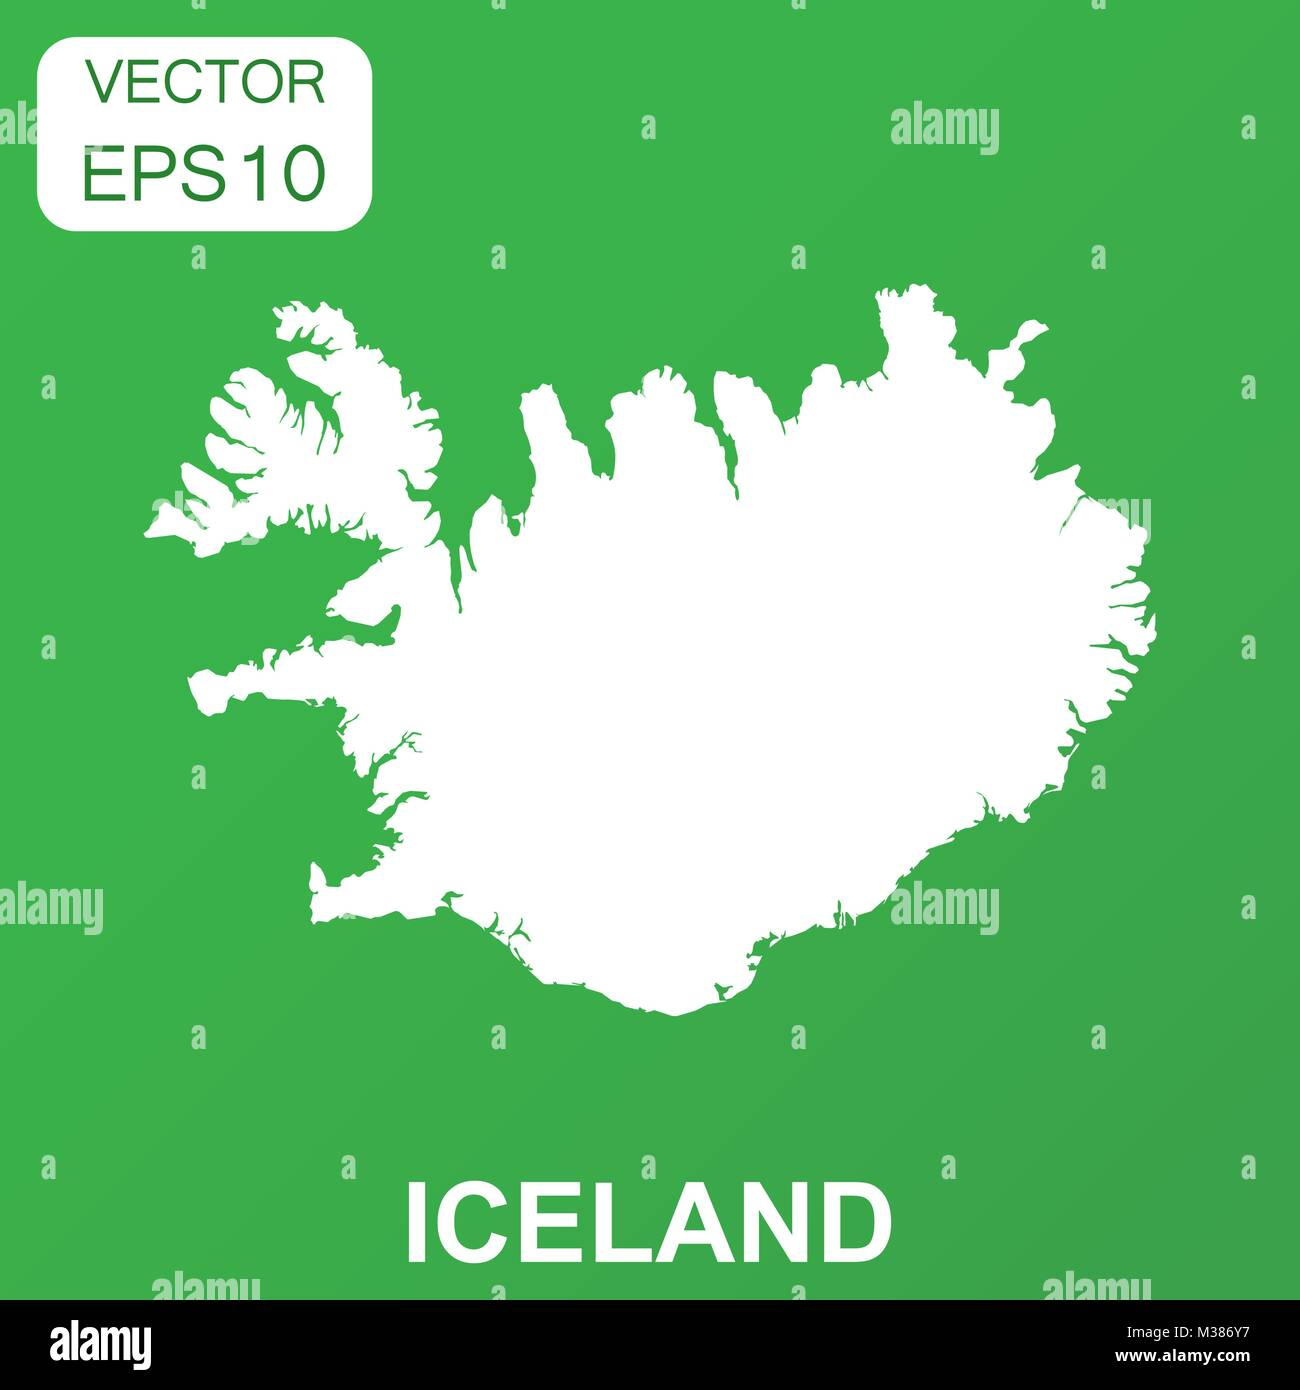 Iceland Map Vector Stock Photos & Iceland Map Vector Stock Images ...